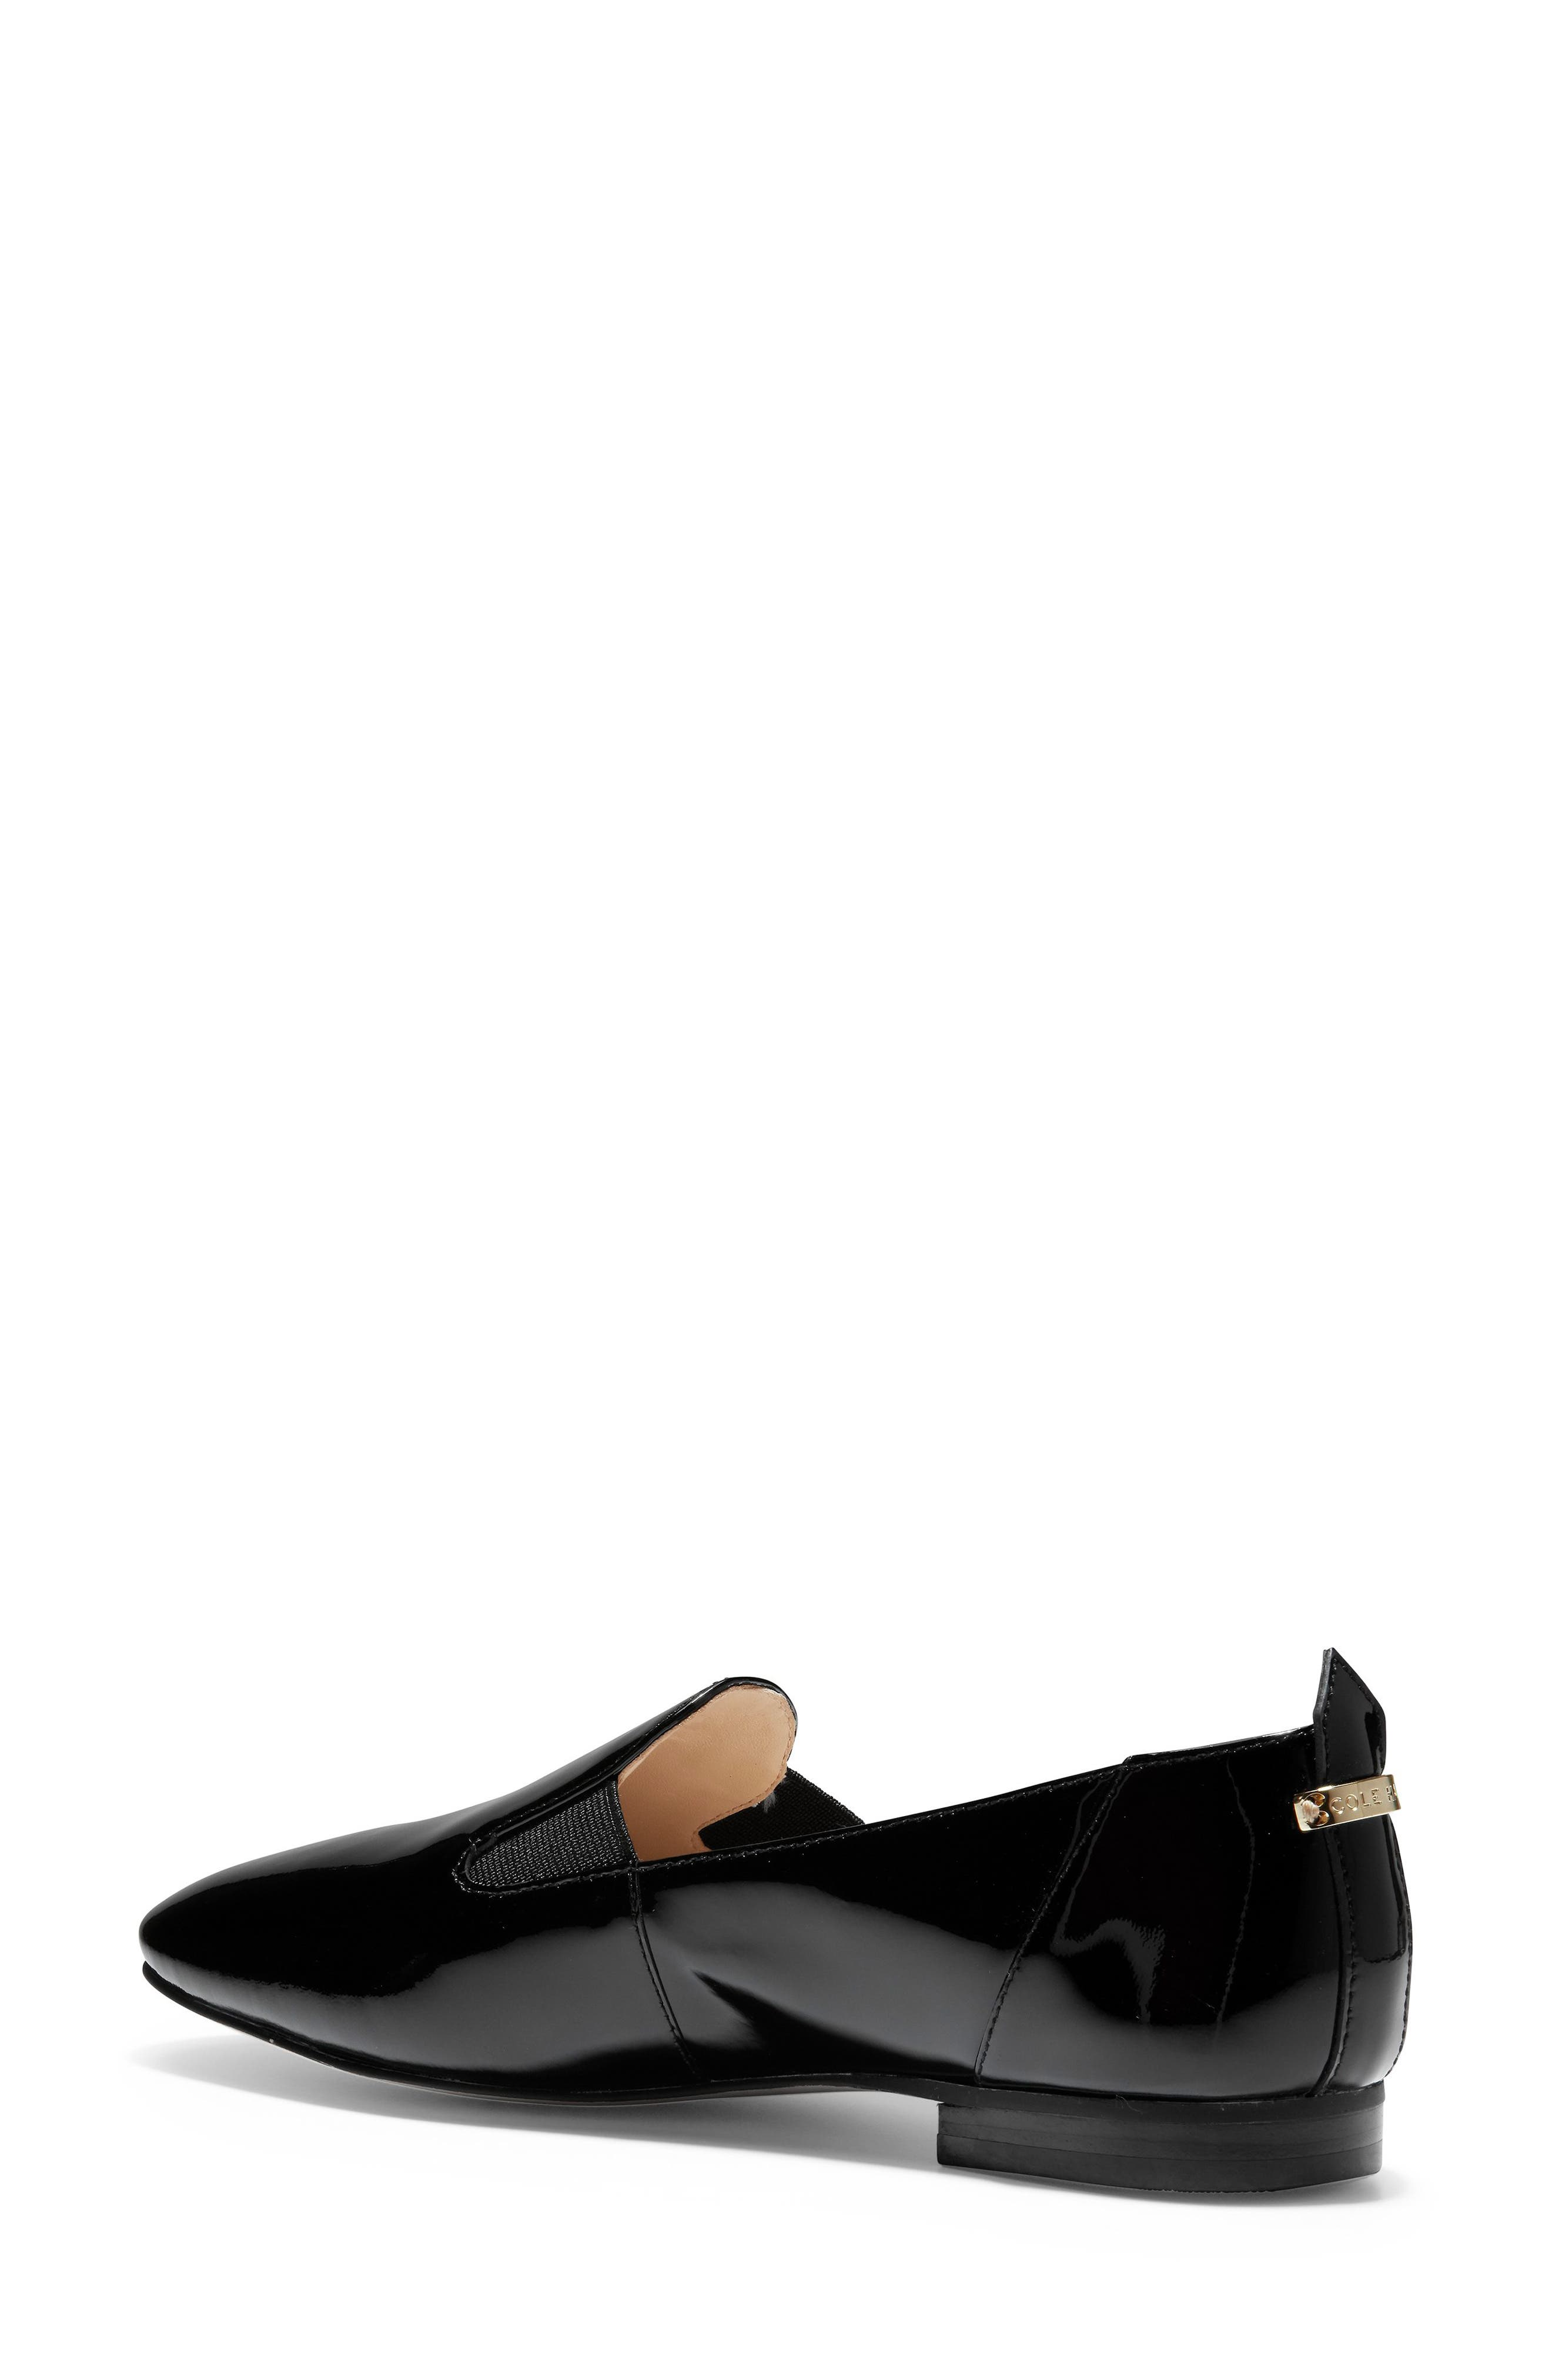 COLE HAAN, Portia Loafer, Alternate thumbnail 2, color, BLACK PATENT LEATHER